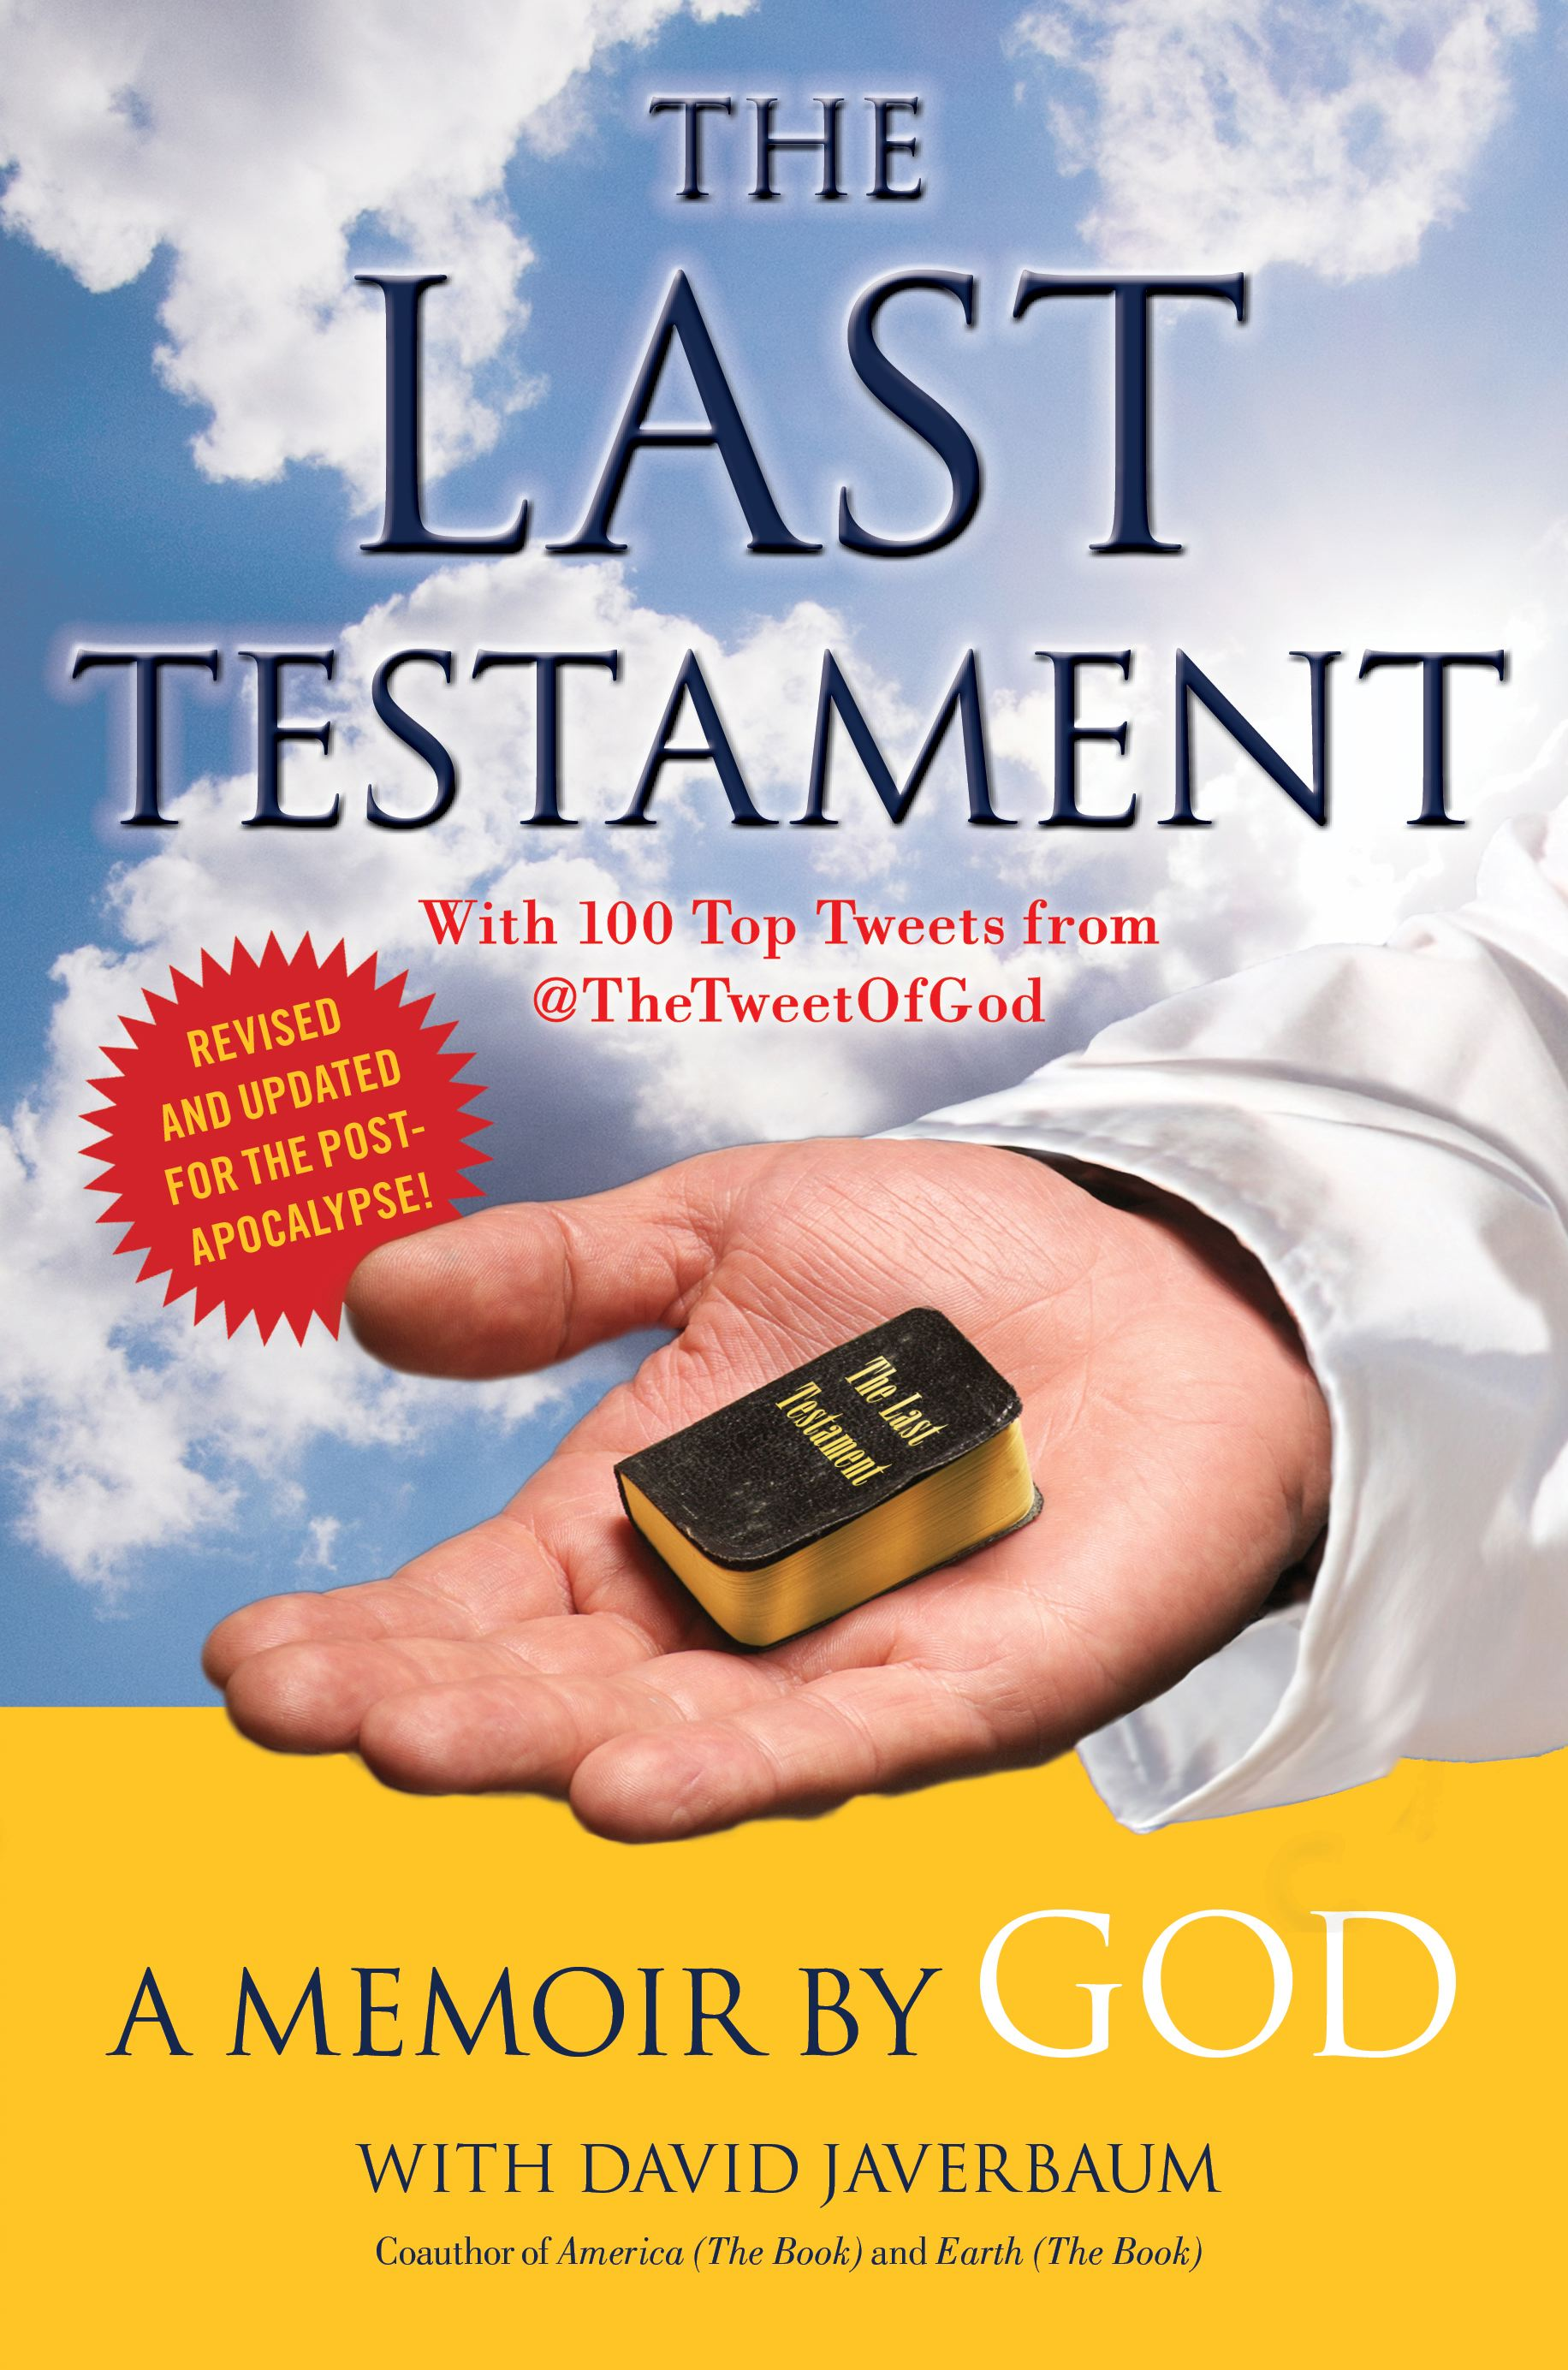 The last testament 9781451640199 hr